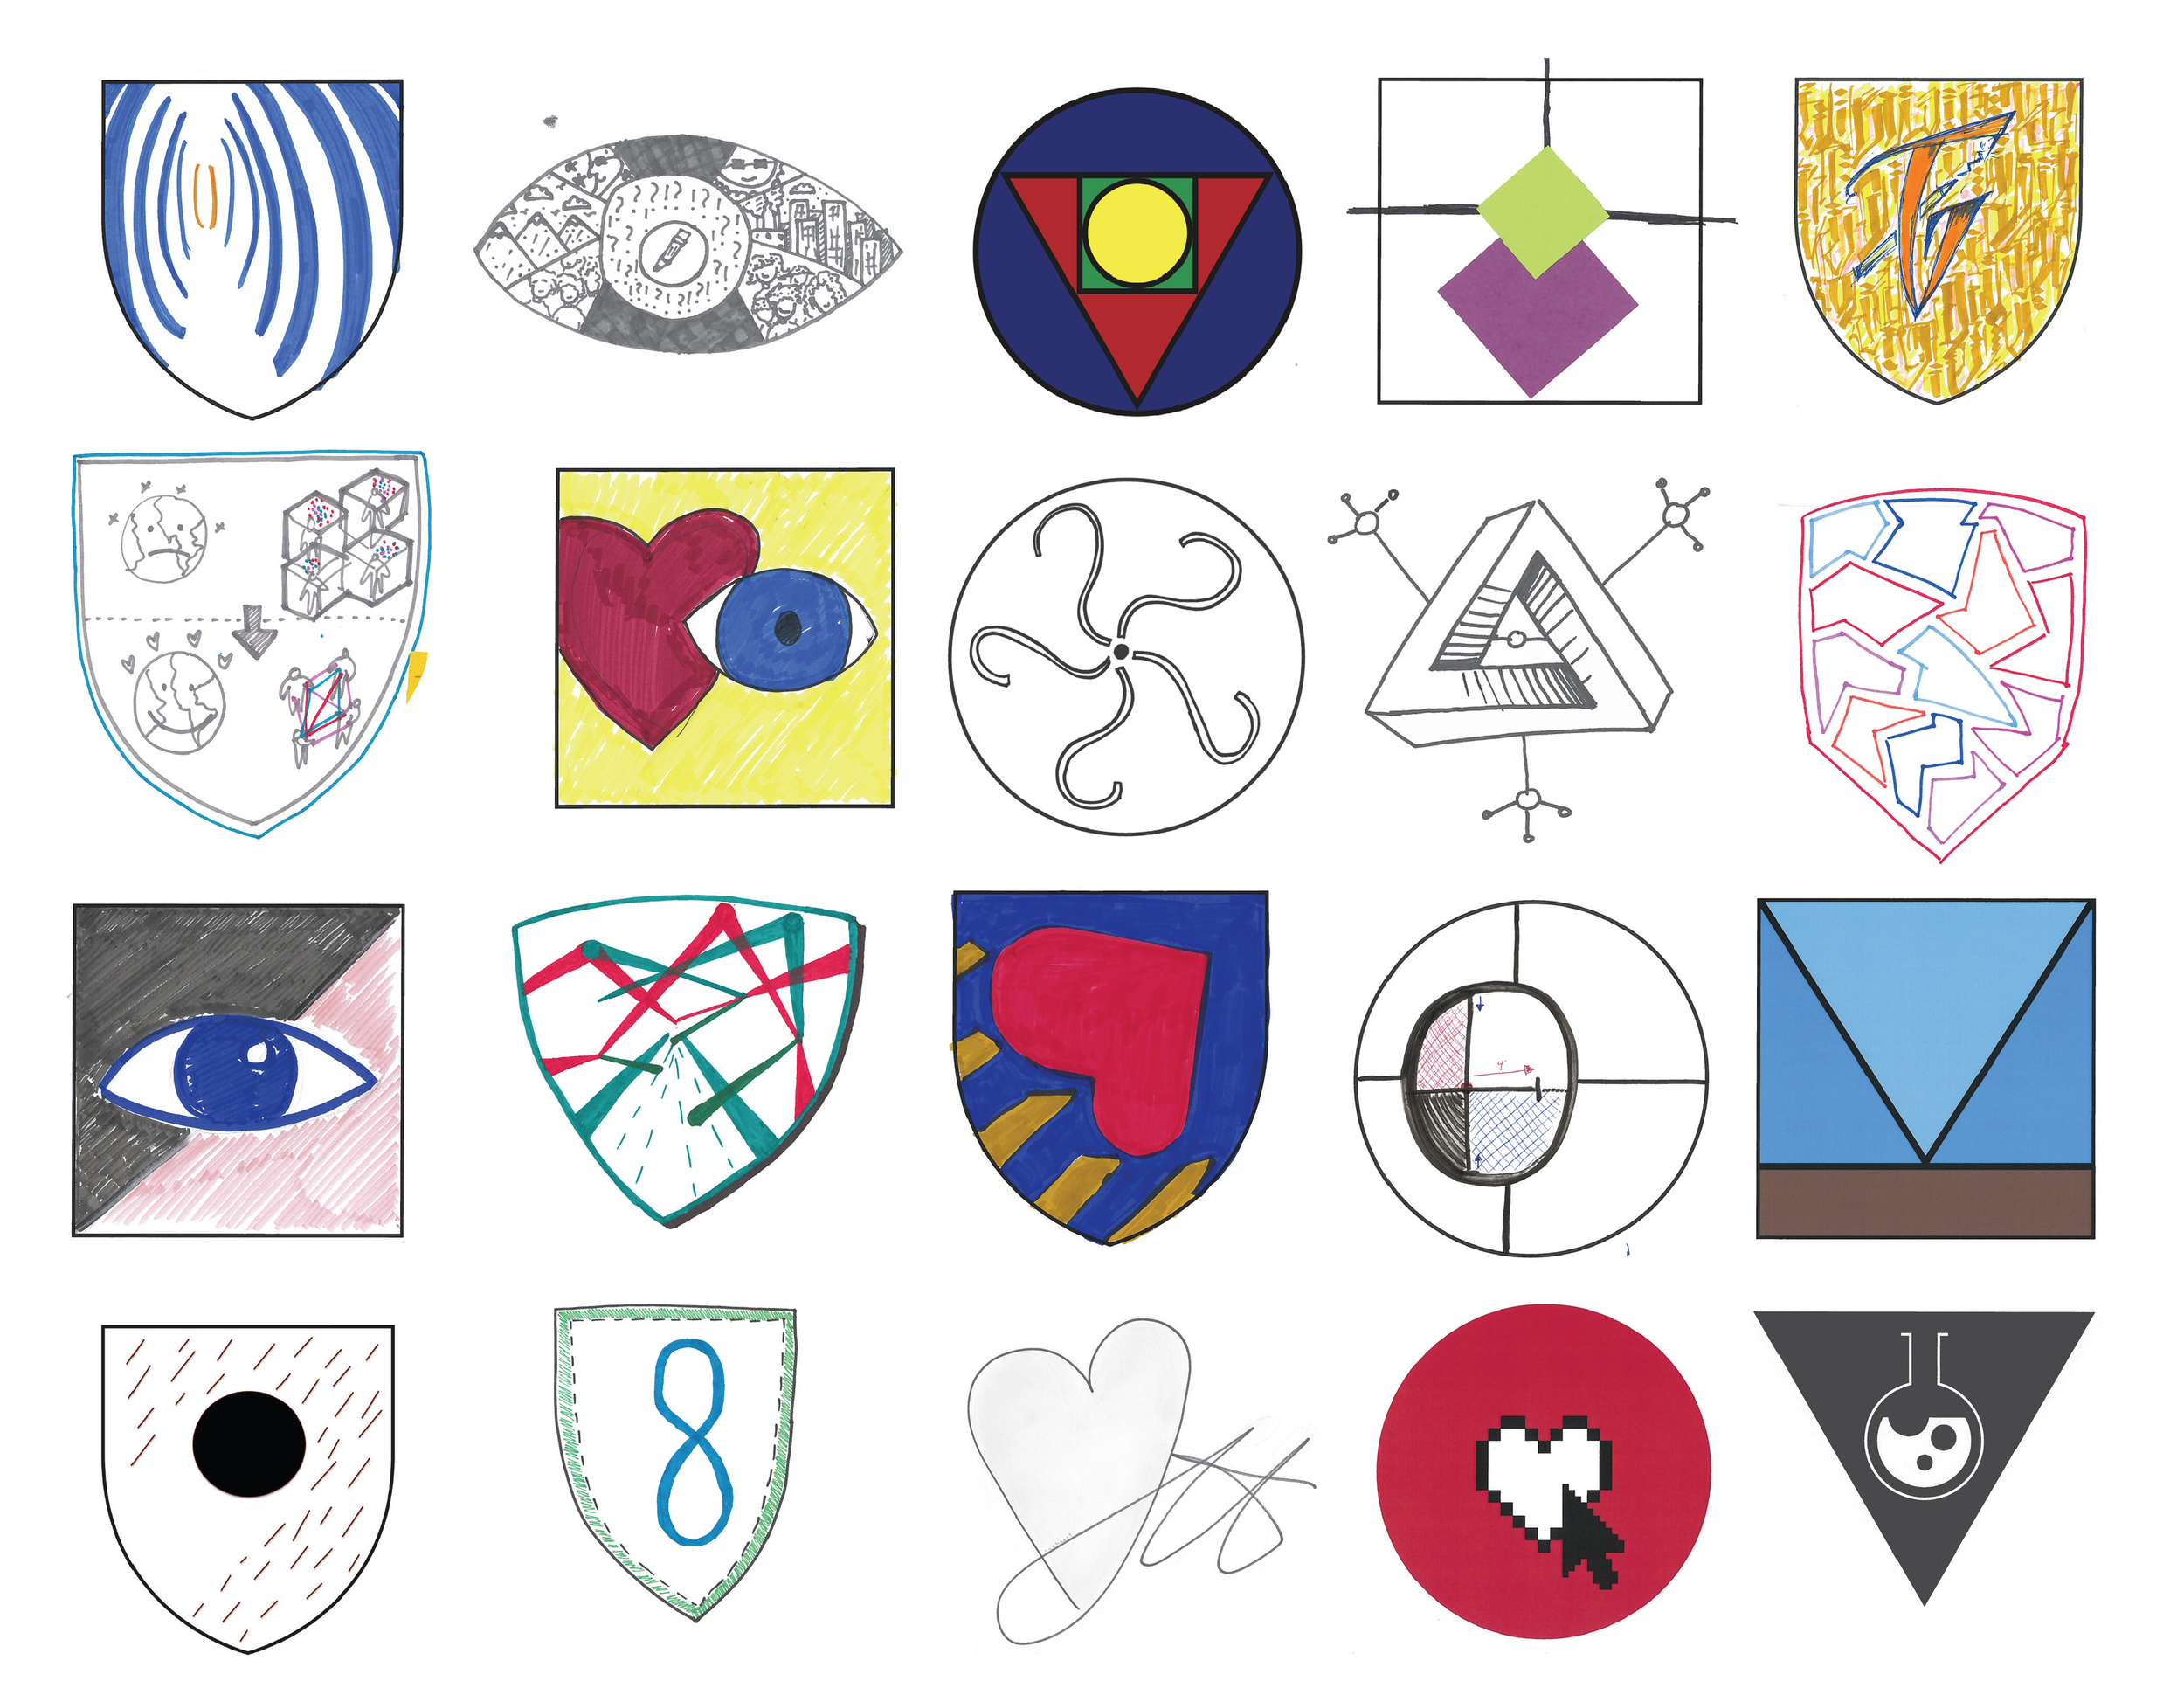 Hero Emblems representing the values and superpowers of each designer